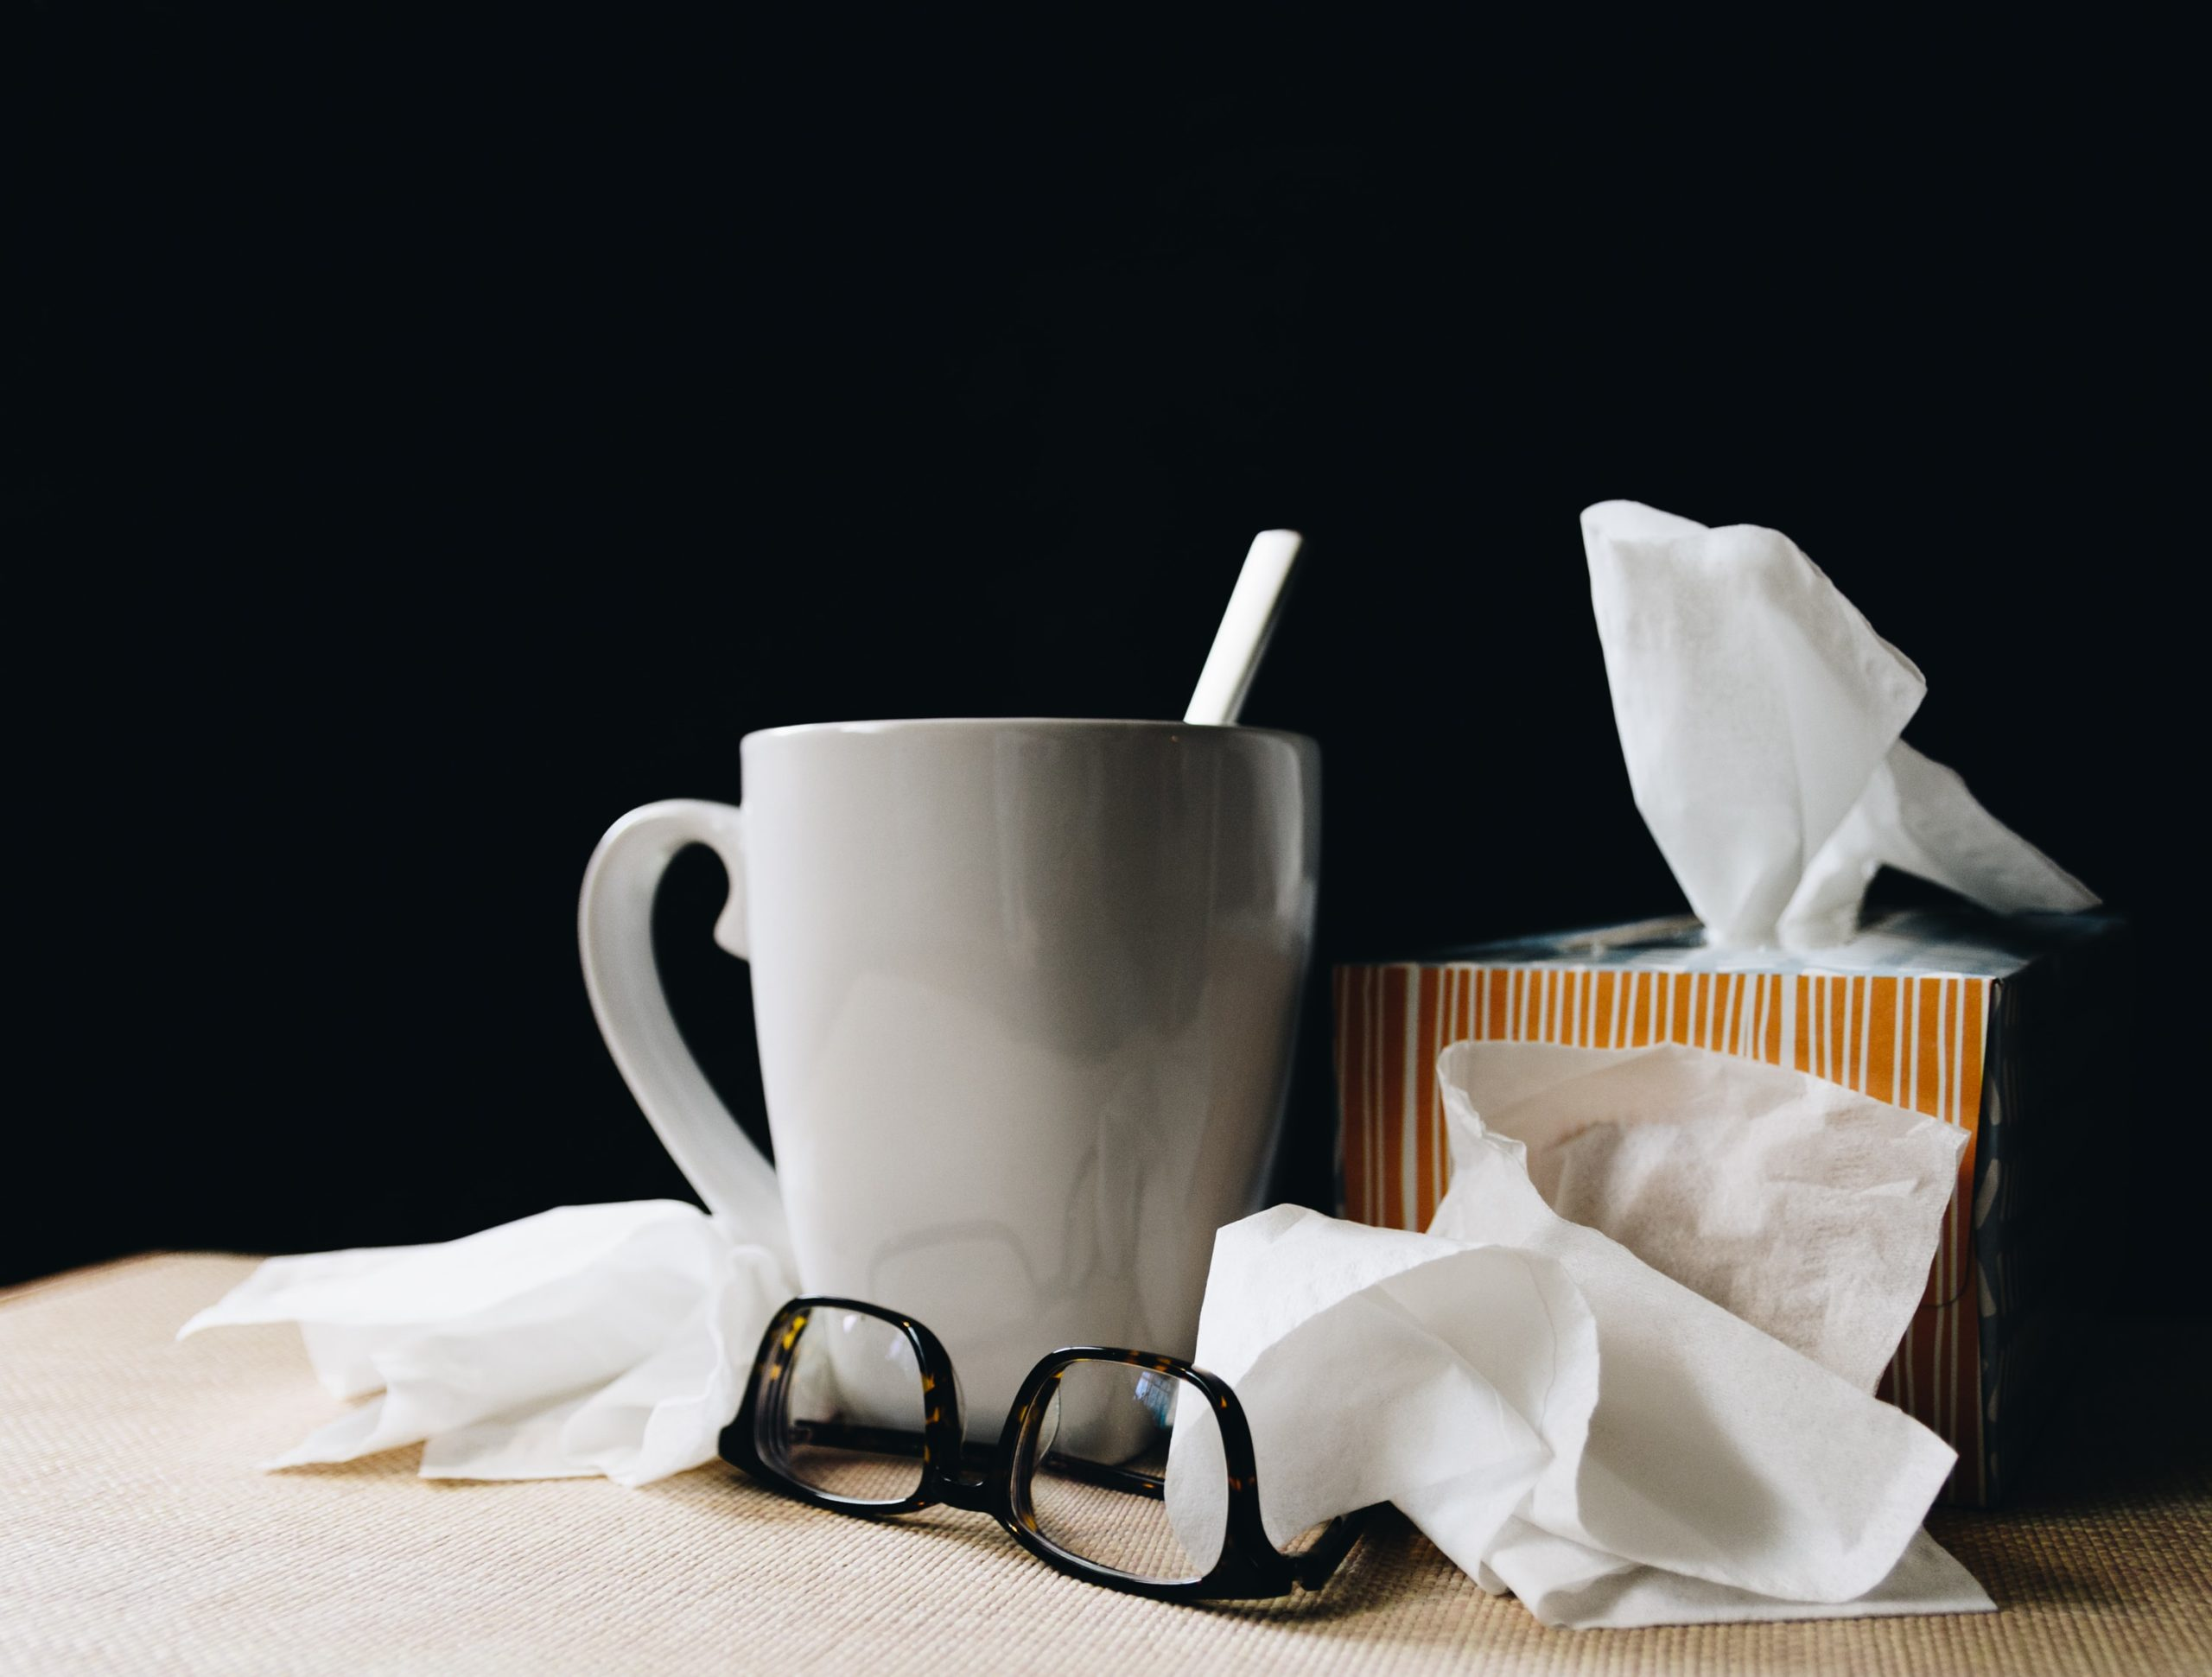 How can we stop people from coming to work sick? by Allison Green